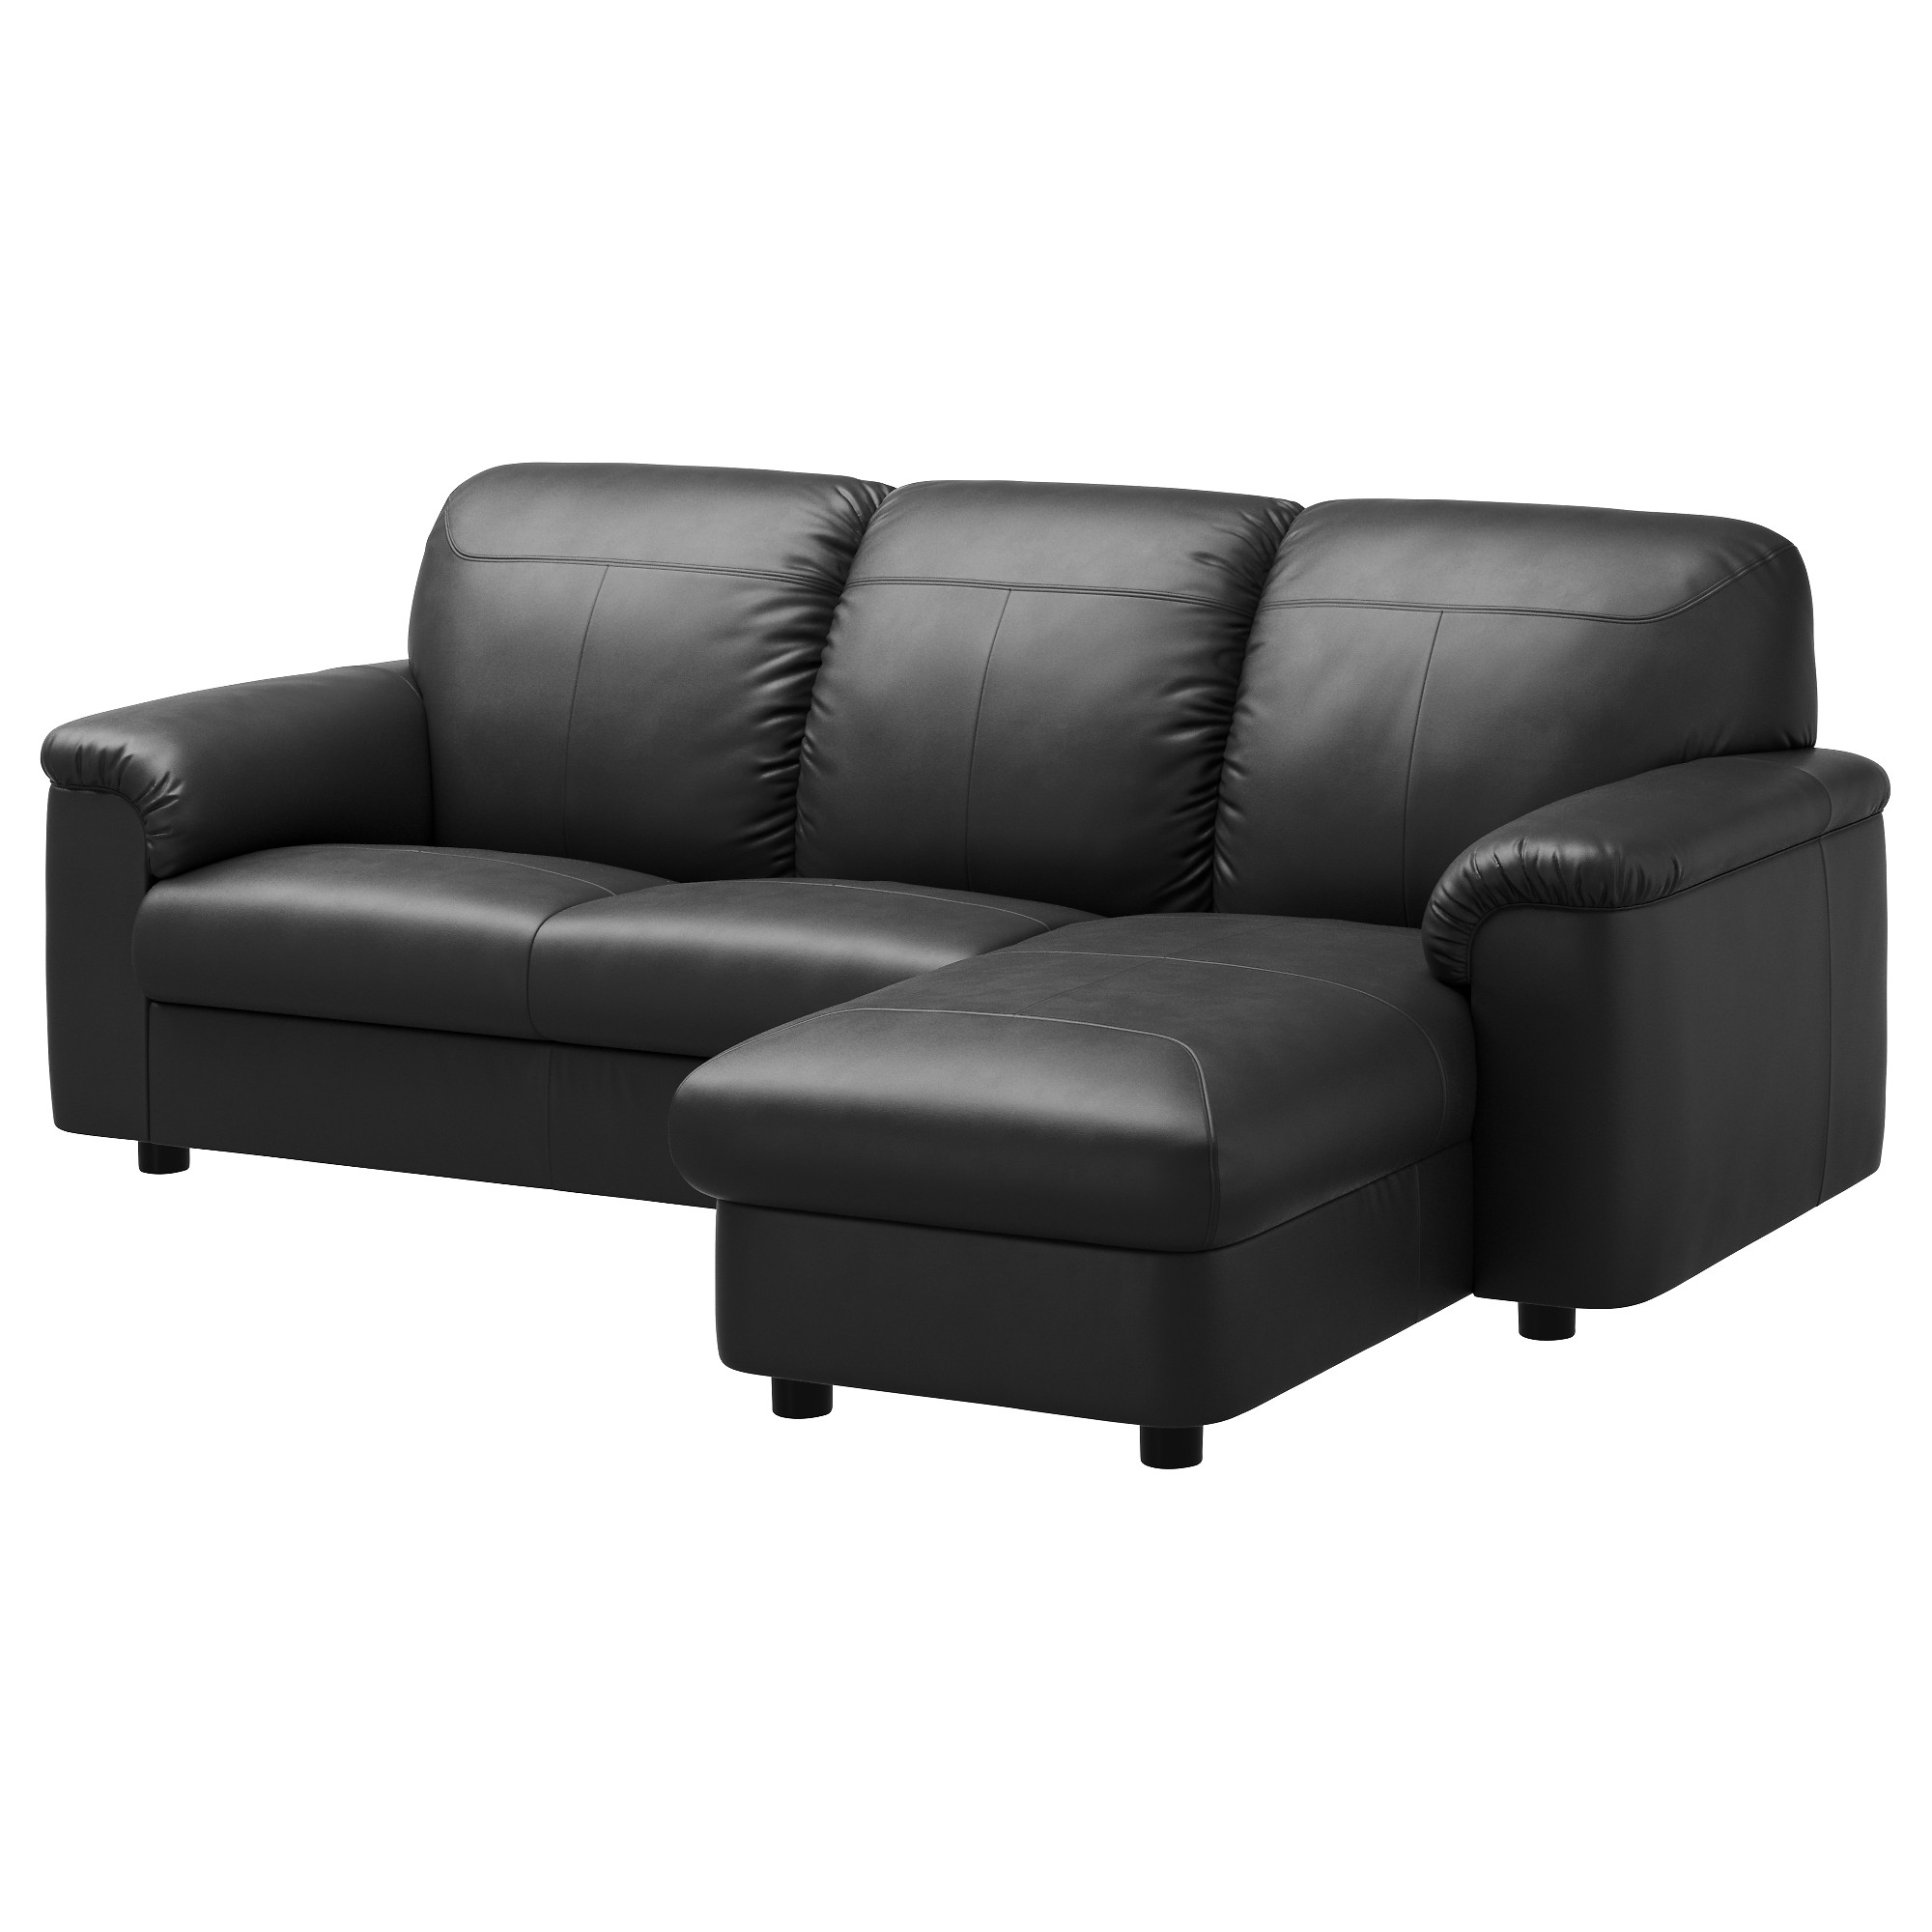 Eckcouch modern  Leather Sofas - Modern & Contemporary - IKEA